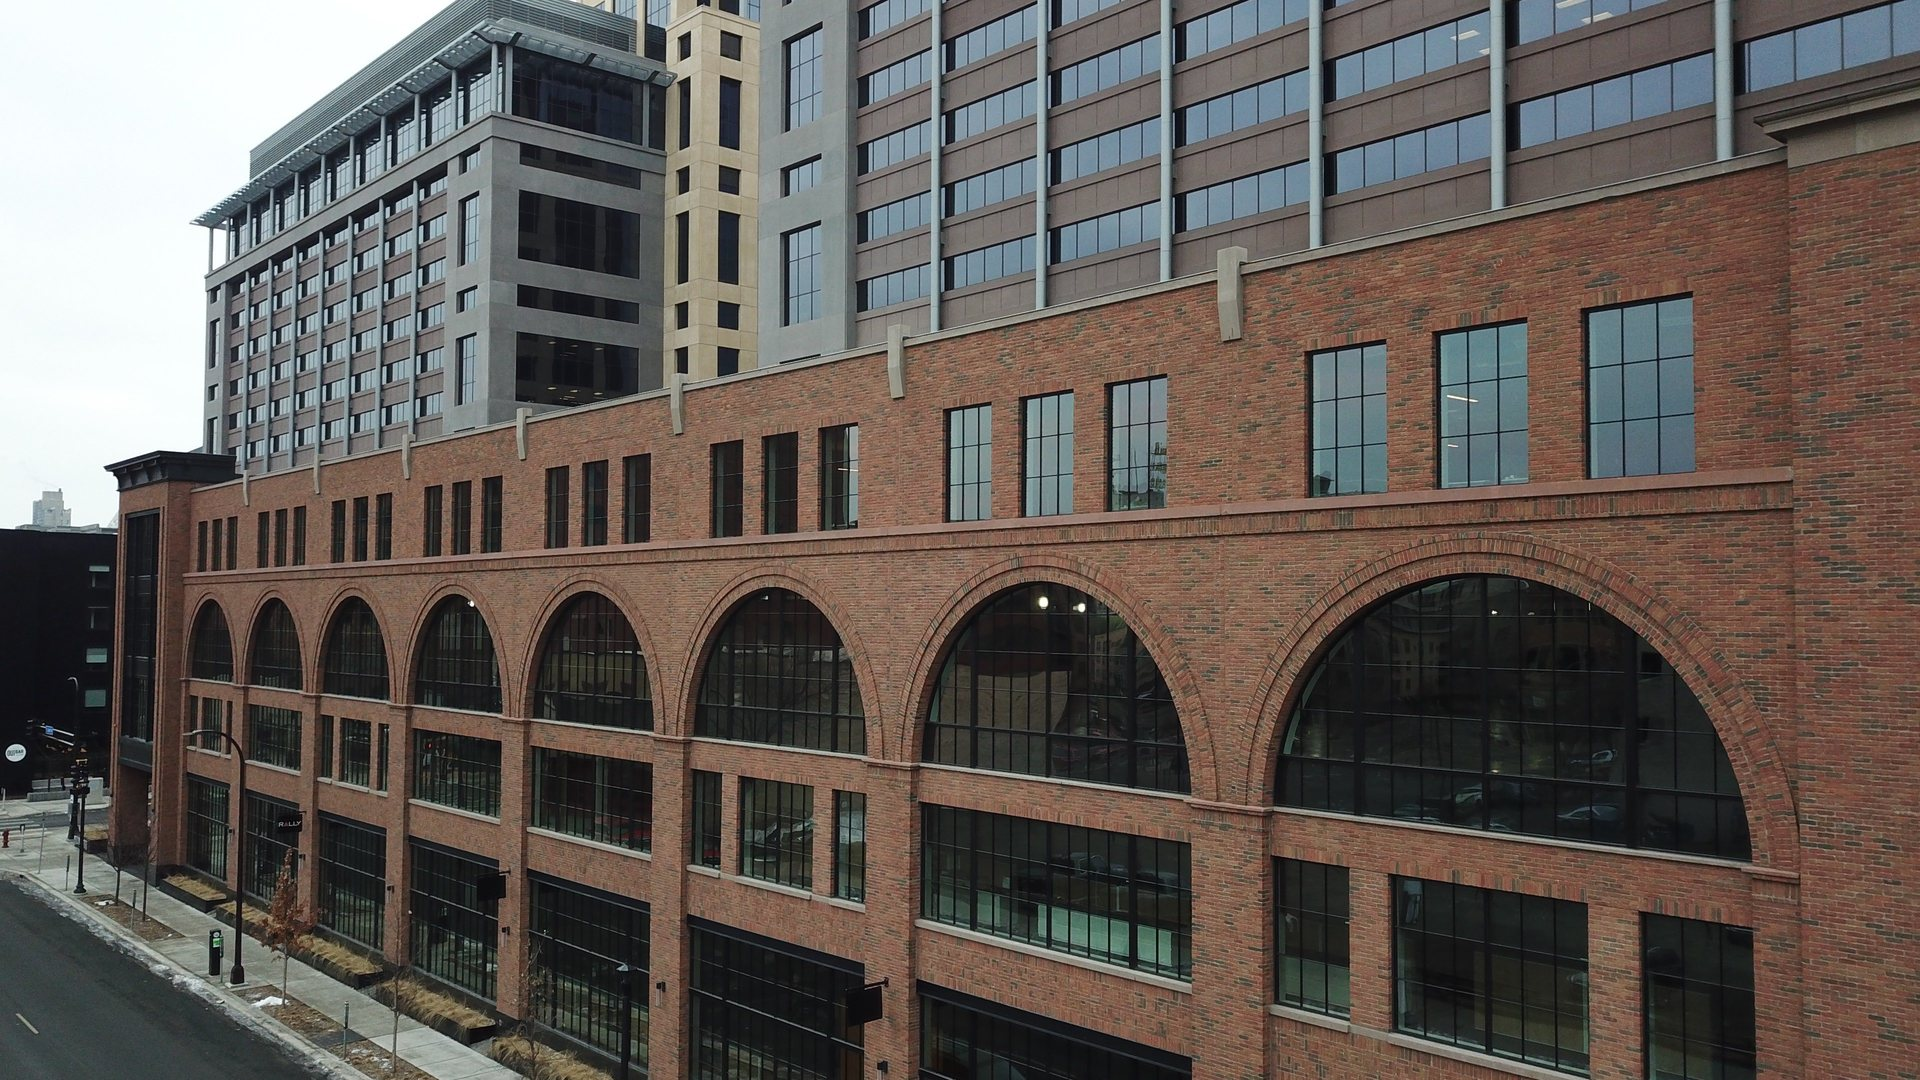 The four-story Millwright building is new construction, but historic-looking exterior features Advanced Formliners Thin Brick